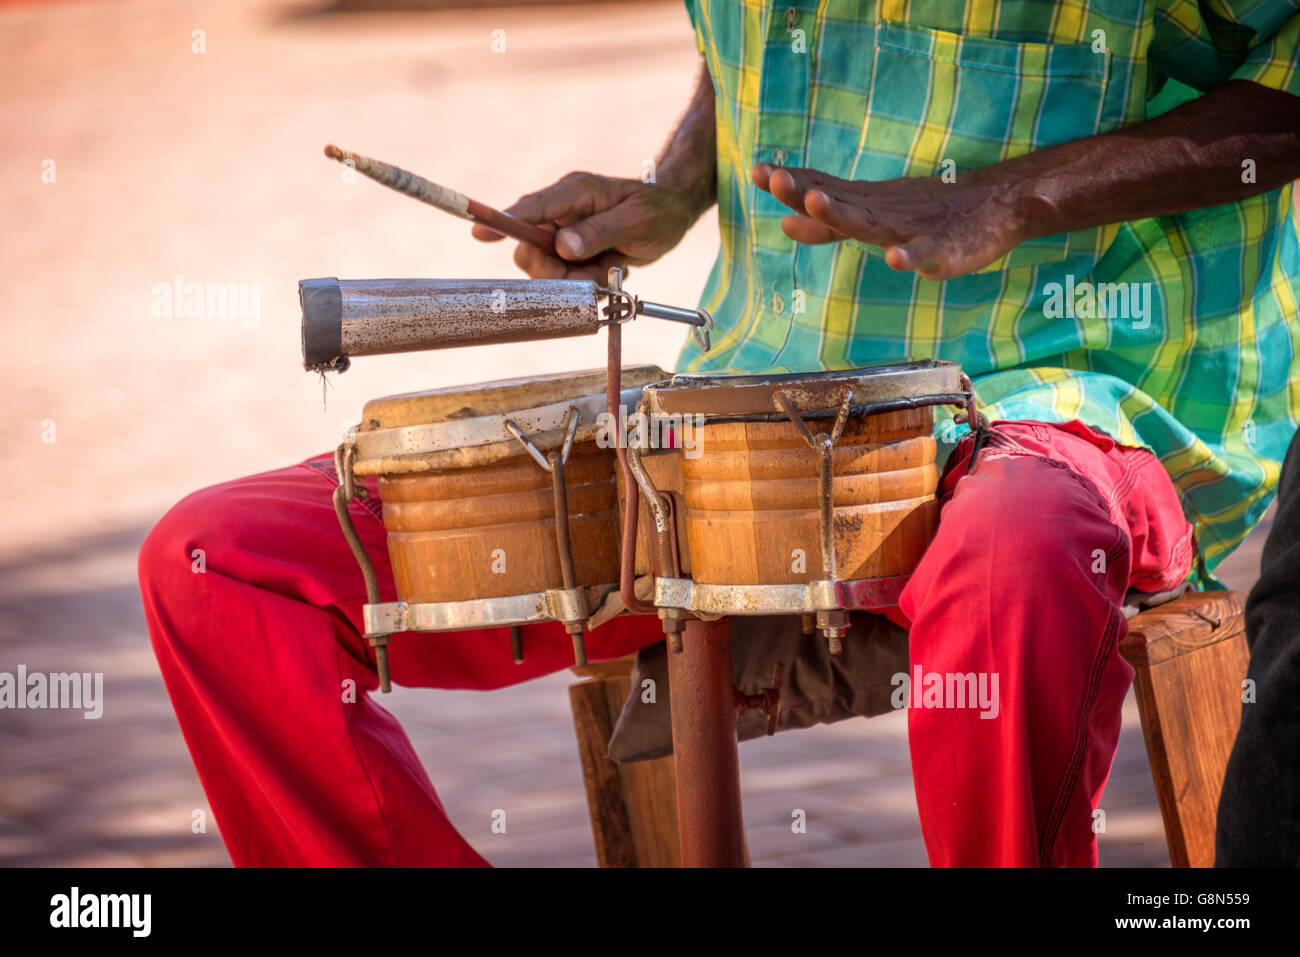 Street musician playing drums in Trinidad, Cuba - Stock Image